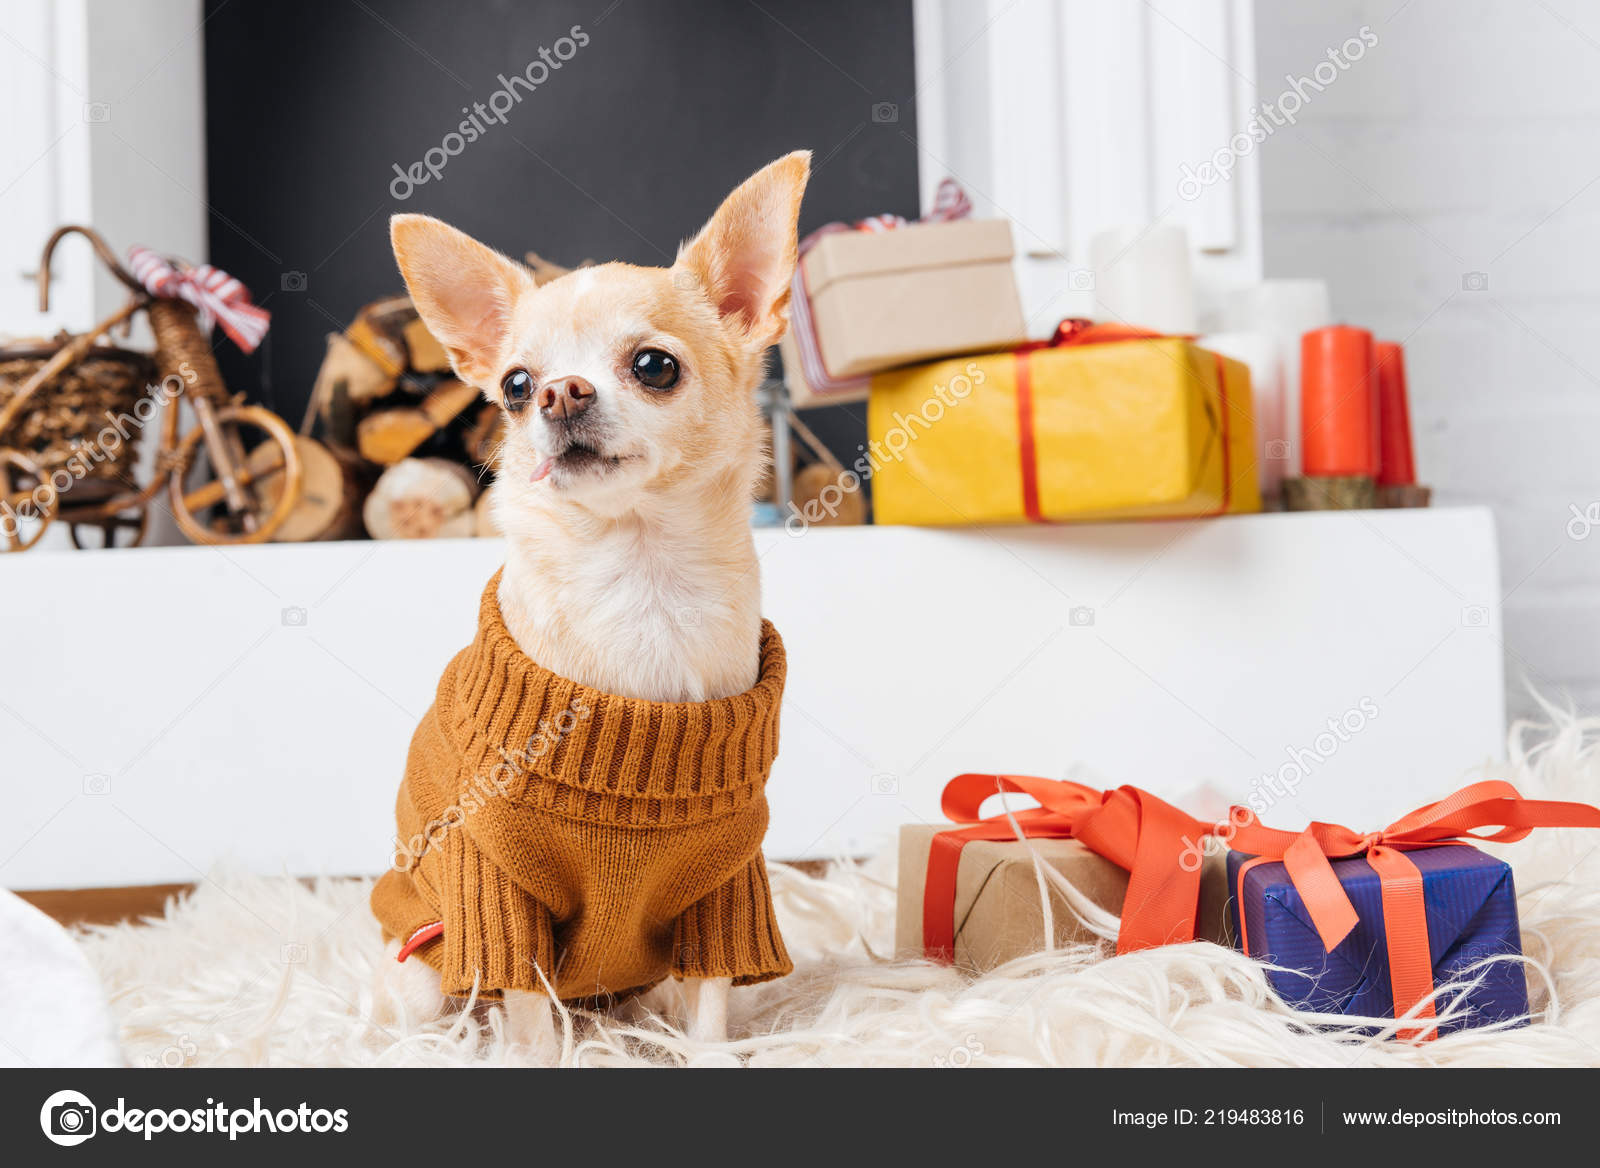 Adorable Chihuahua Dog Sweater Sitting Floor Christmas Presents